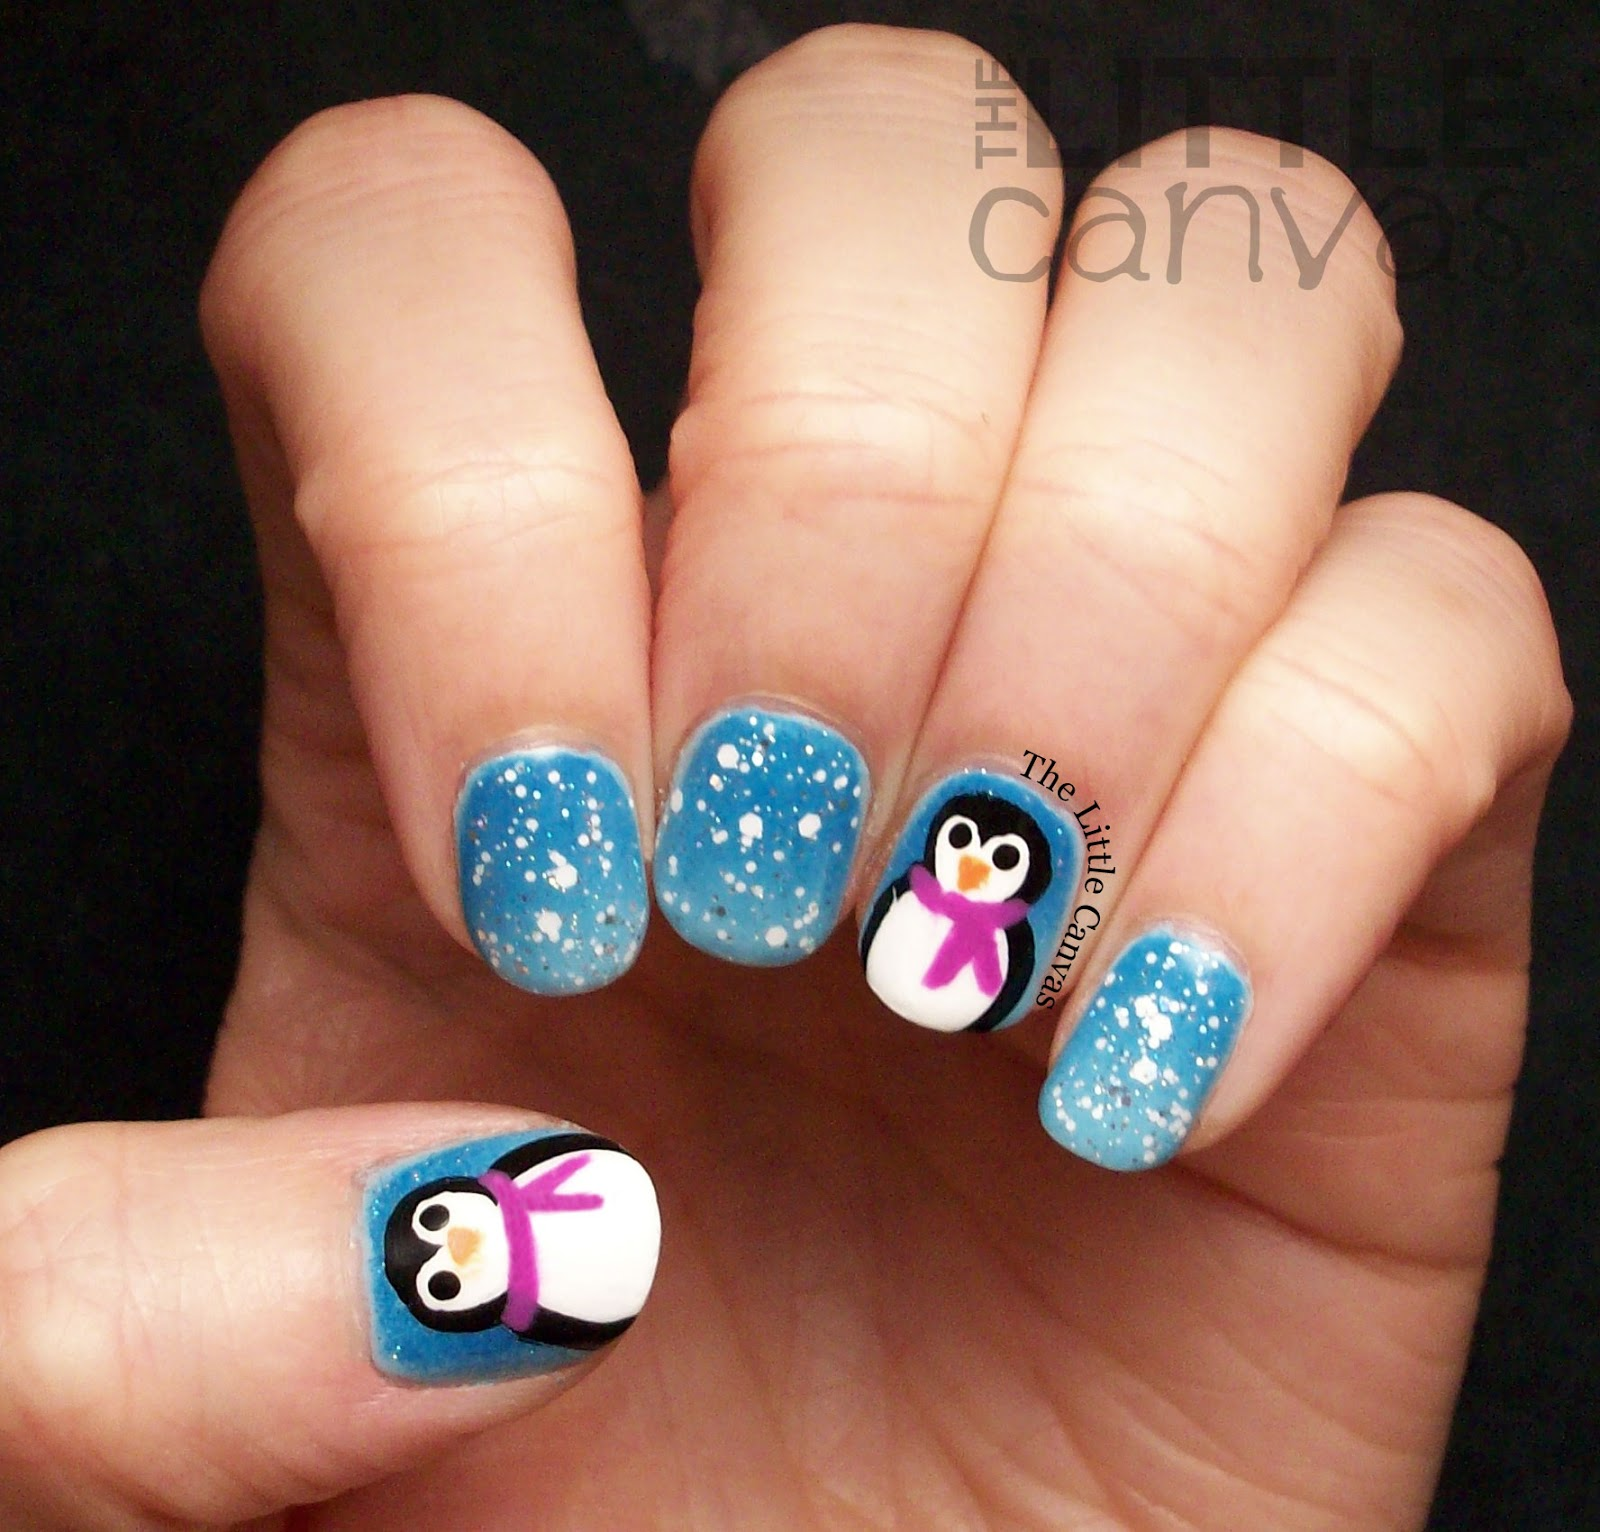 Penguin Nail Art Designs: The First Snowy Manicure Of The Season